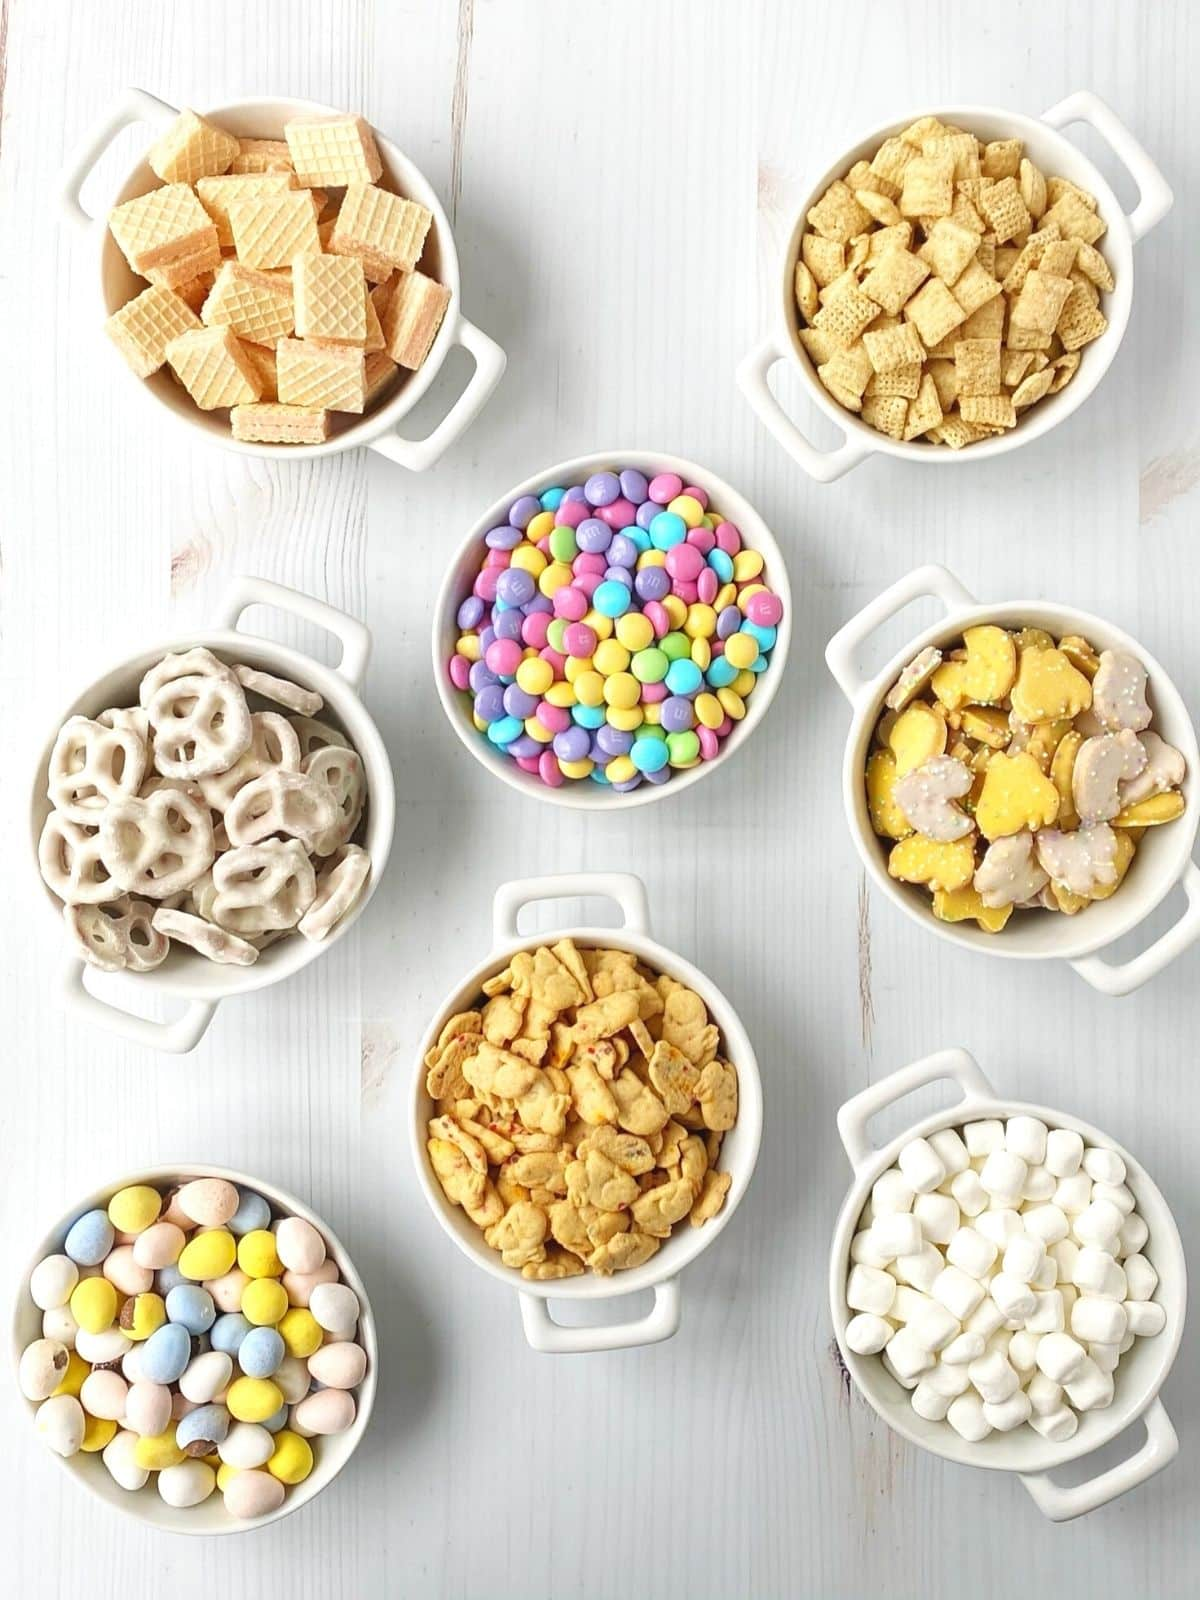 bowls of ingredients - chocolates, cereal, pretzels, grahams, cookies, and marshmallows